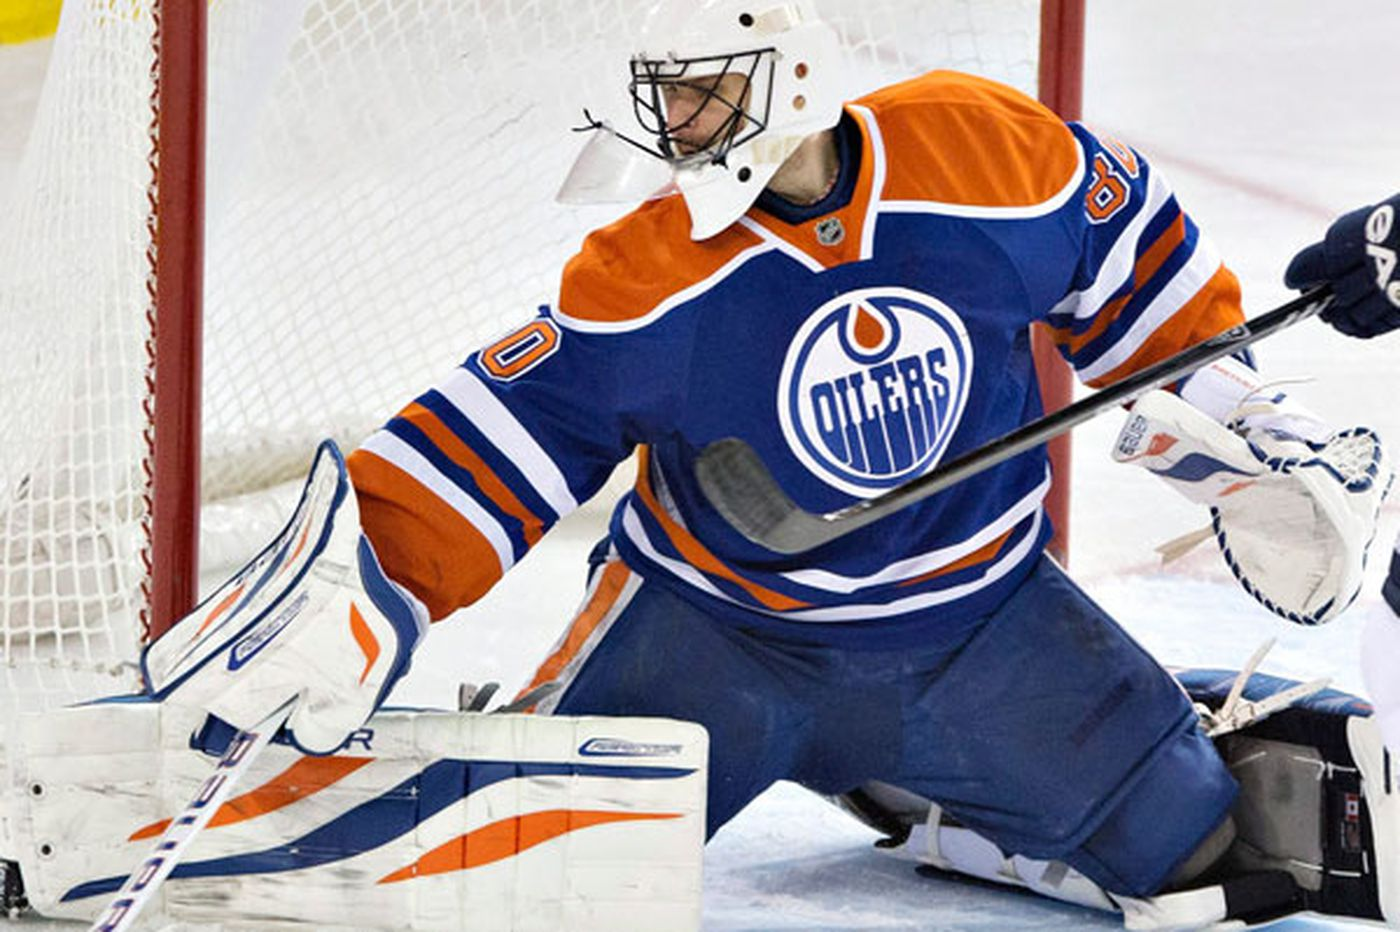 Flyers set to face Bryzgalov in Edmonton